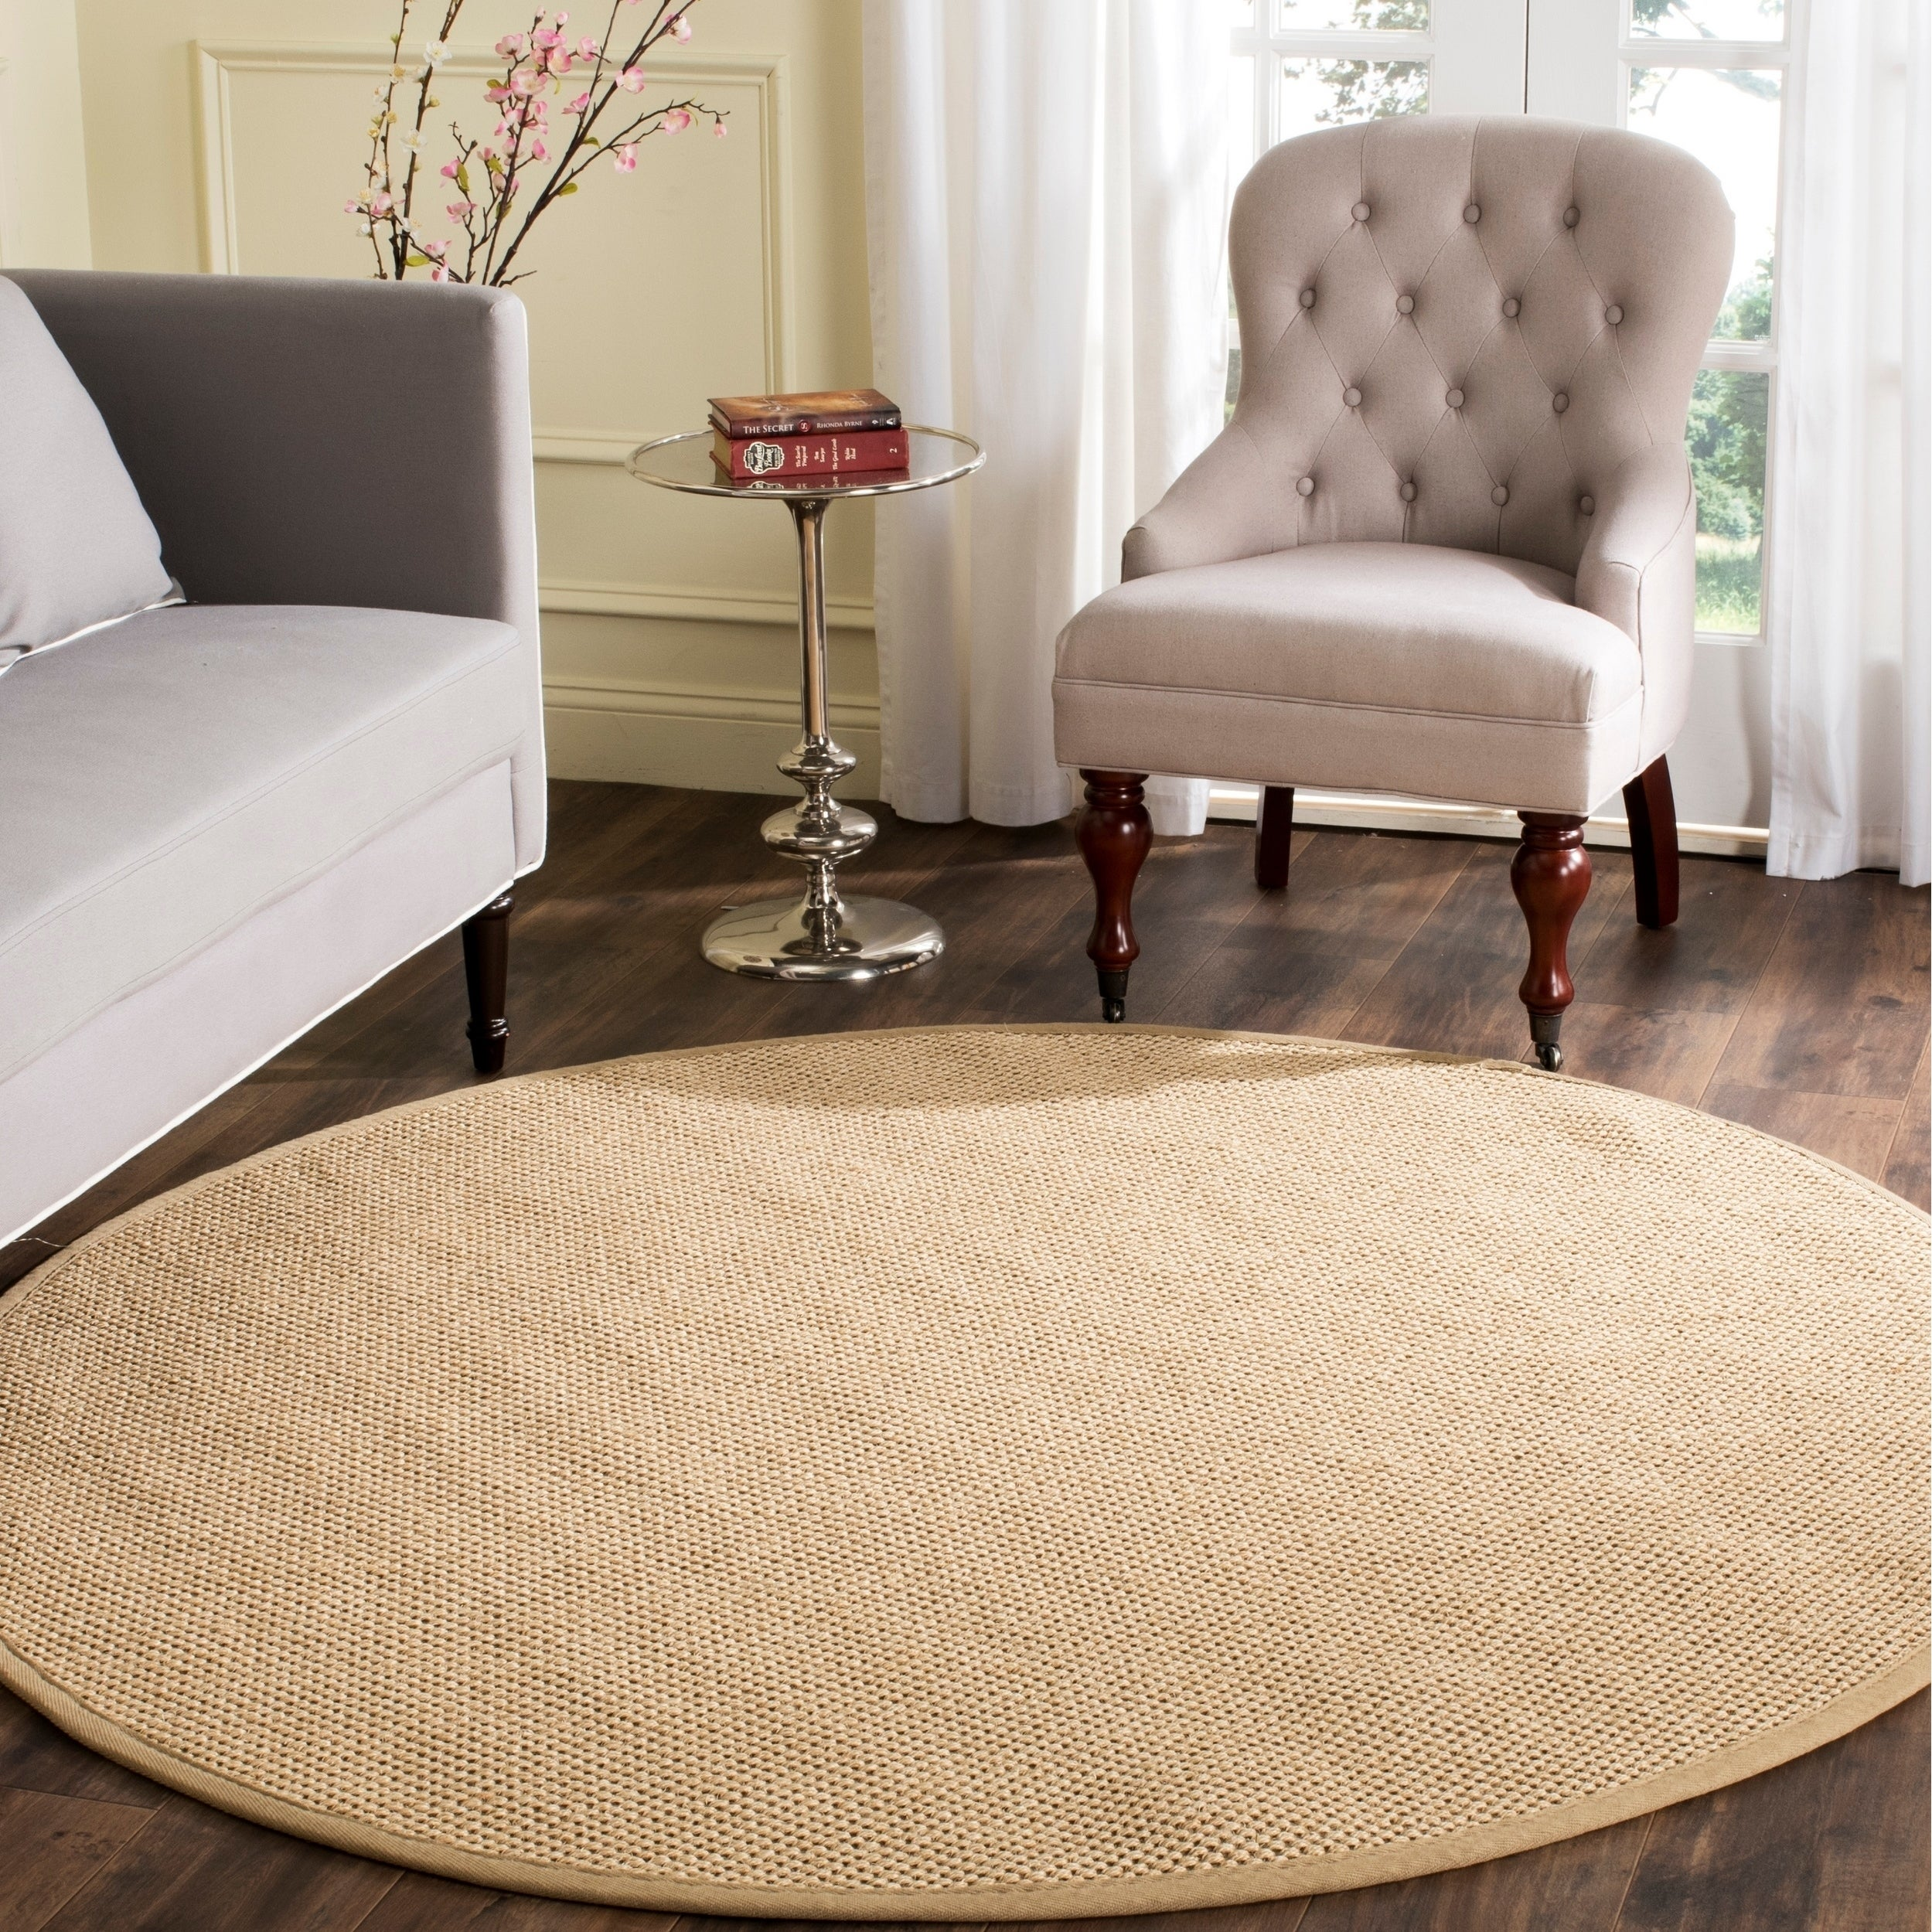 New Dining Room Rug Round Table